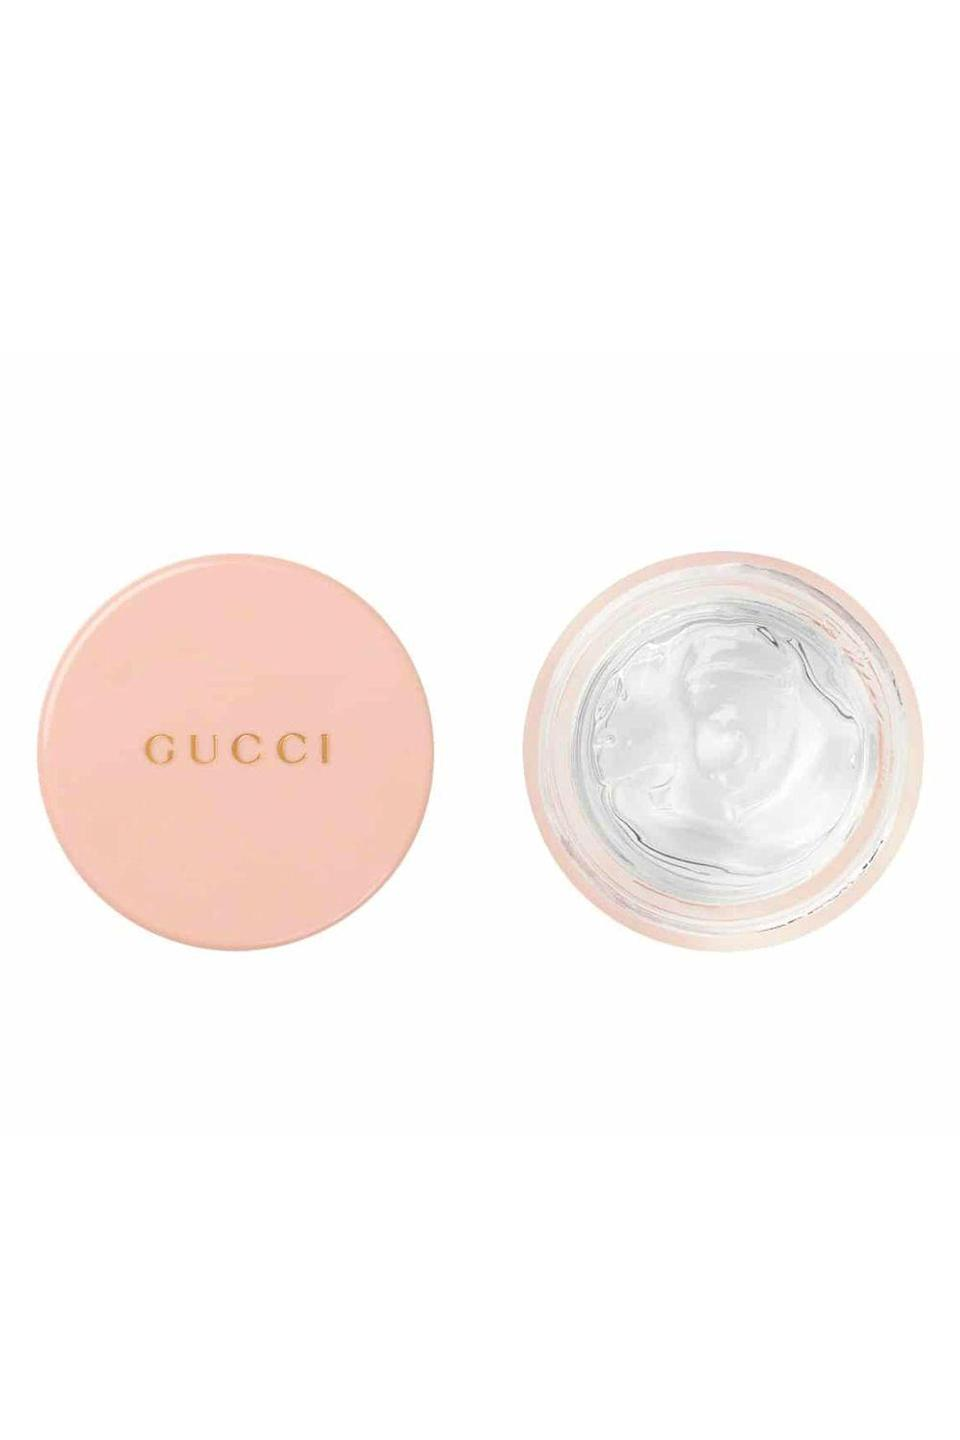 """<p><strong>Gucci</strong></p><p>sephora.com</p><p><strong>$33.00</strong></p><p><a href=""""https://go.redirectingat.com?id=74968X1596630&url=https%3A%2F%2Fwww.sephora.com%2Fproduct%2Fgucci-eclat-de-beaute-effet-lumiere-all-over-face-lip-gloss-P457649&sref=https%3A%2F%2Fwww.cosmopolitan.com%2Fstyle-beauty%2Fbeauty%2Fg36460987%2Fbest-face-gloss%2F"""" rel=""""nofollow noopener"""" target=""""_blank"""" data-ylk=""""slk:Shop Now"""" class=""""link rapid-noclick-resp"""">Shop Now</a></p><p>It's everything you could ever want in a face gloss (and a <a href=""""https://www.cosmopolitan.com/style-beauty/beauty/a36130996/beauty-awards-2021/"""" rel=""""nofollow noopener"""" target=""""_blank"""" data-ylk=""""slk:Cosmo beauty award winner"""" class=""""link rapid-noclick-resp""""><em>Cosmo</em> beauty award winner</a> too!). The <strong>gel-like formula is easy to apply</strong>, gives eyes, lips, and cheeks an instant glow, and never feels sticky or heavy on skin either.</p>"""